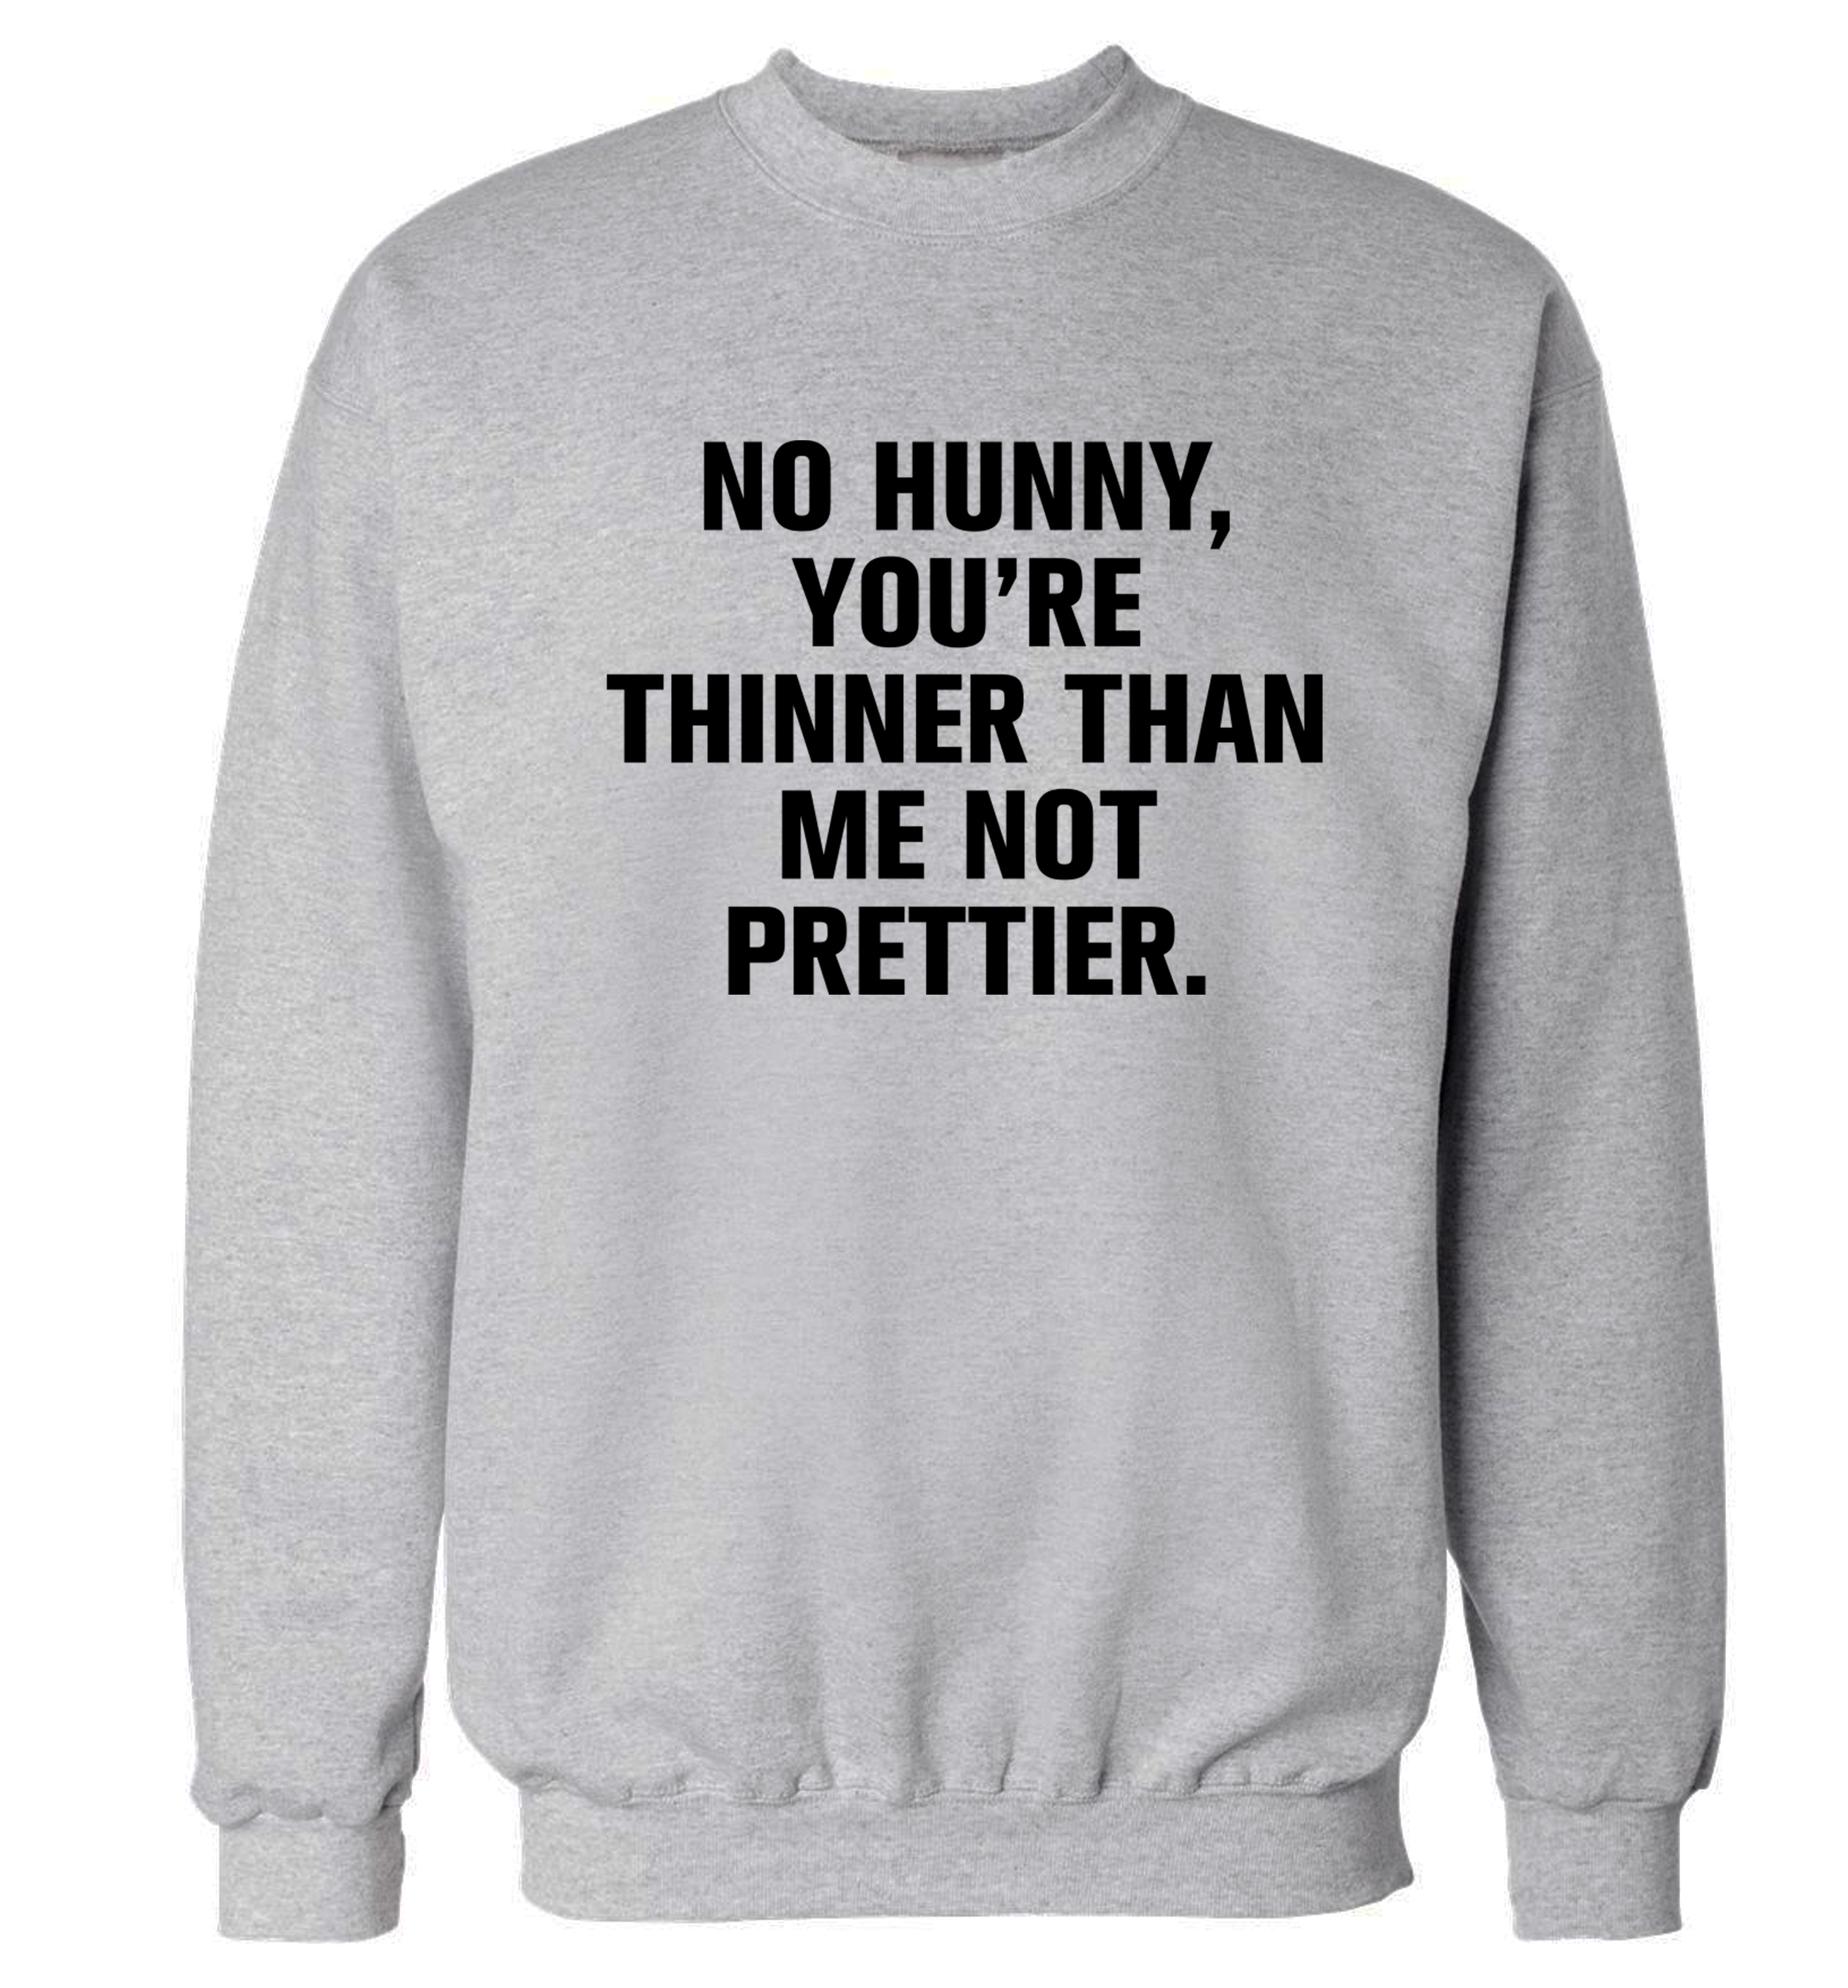 Pullover In Gym No Hunny You Re Thinner Than Me Not Prettier Jumper Pullover Hipster Instagram Joke Gym Workout Fitness Weight Curvy Funny Gift Sassy Sweater 150 From